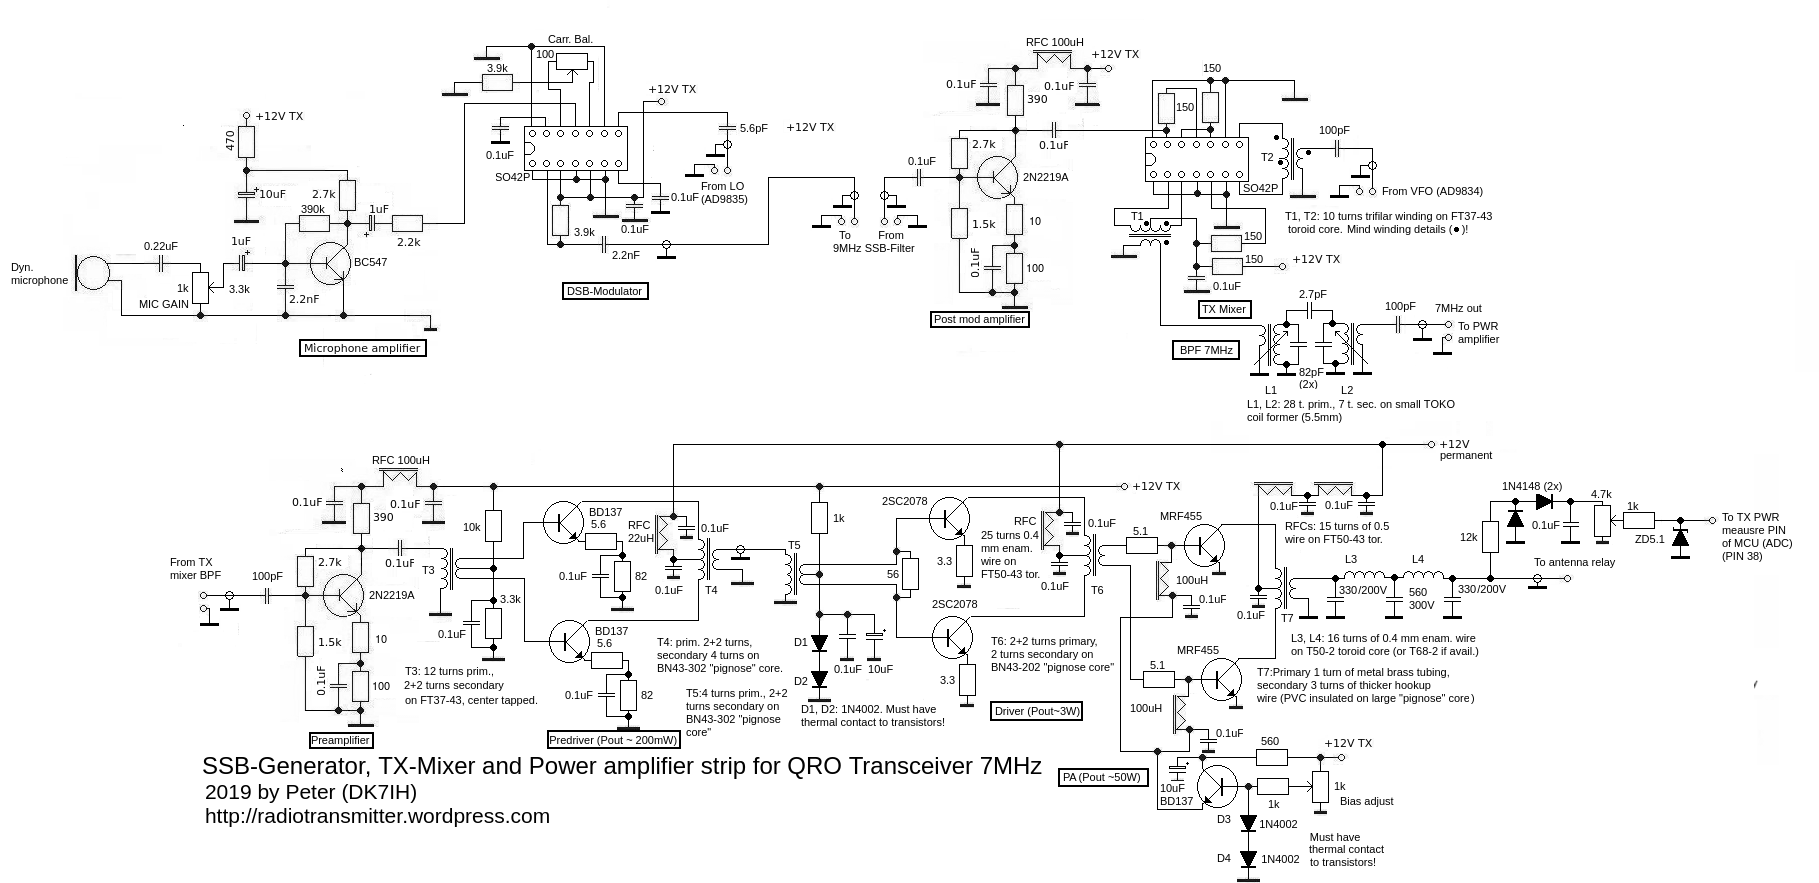 DK7IH QRO SSB transceiver for 7MHz/40m - The Transmitter